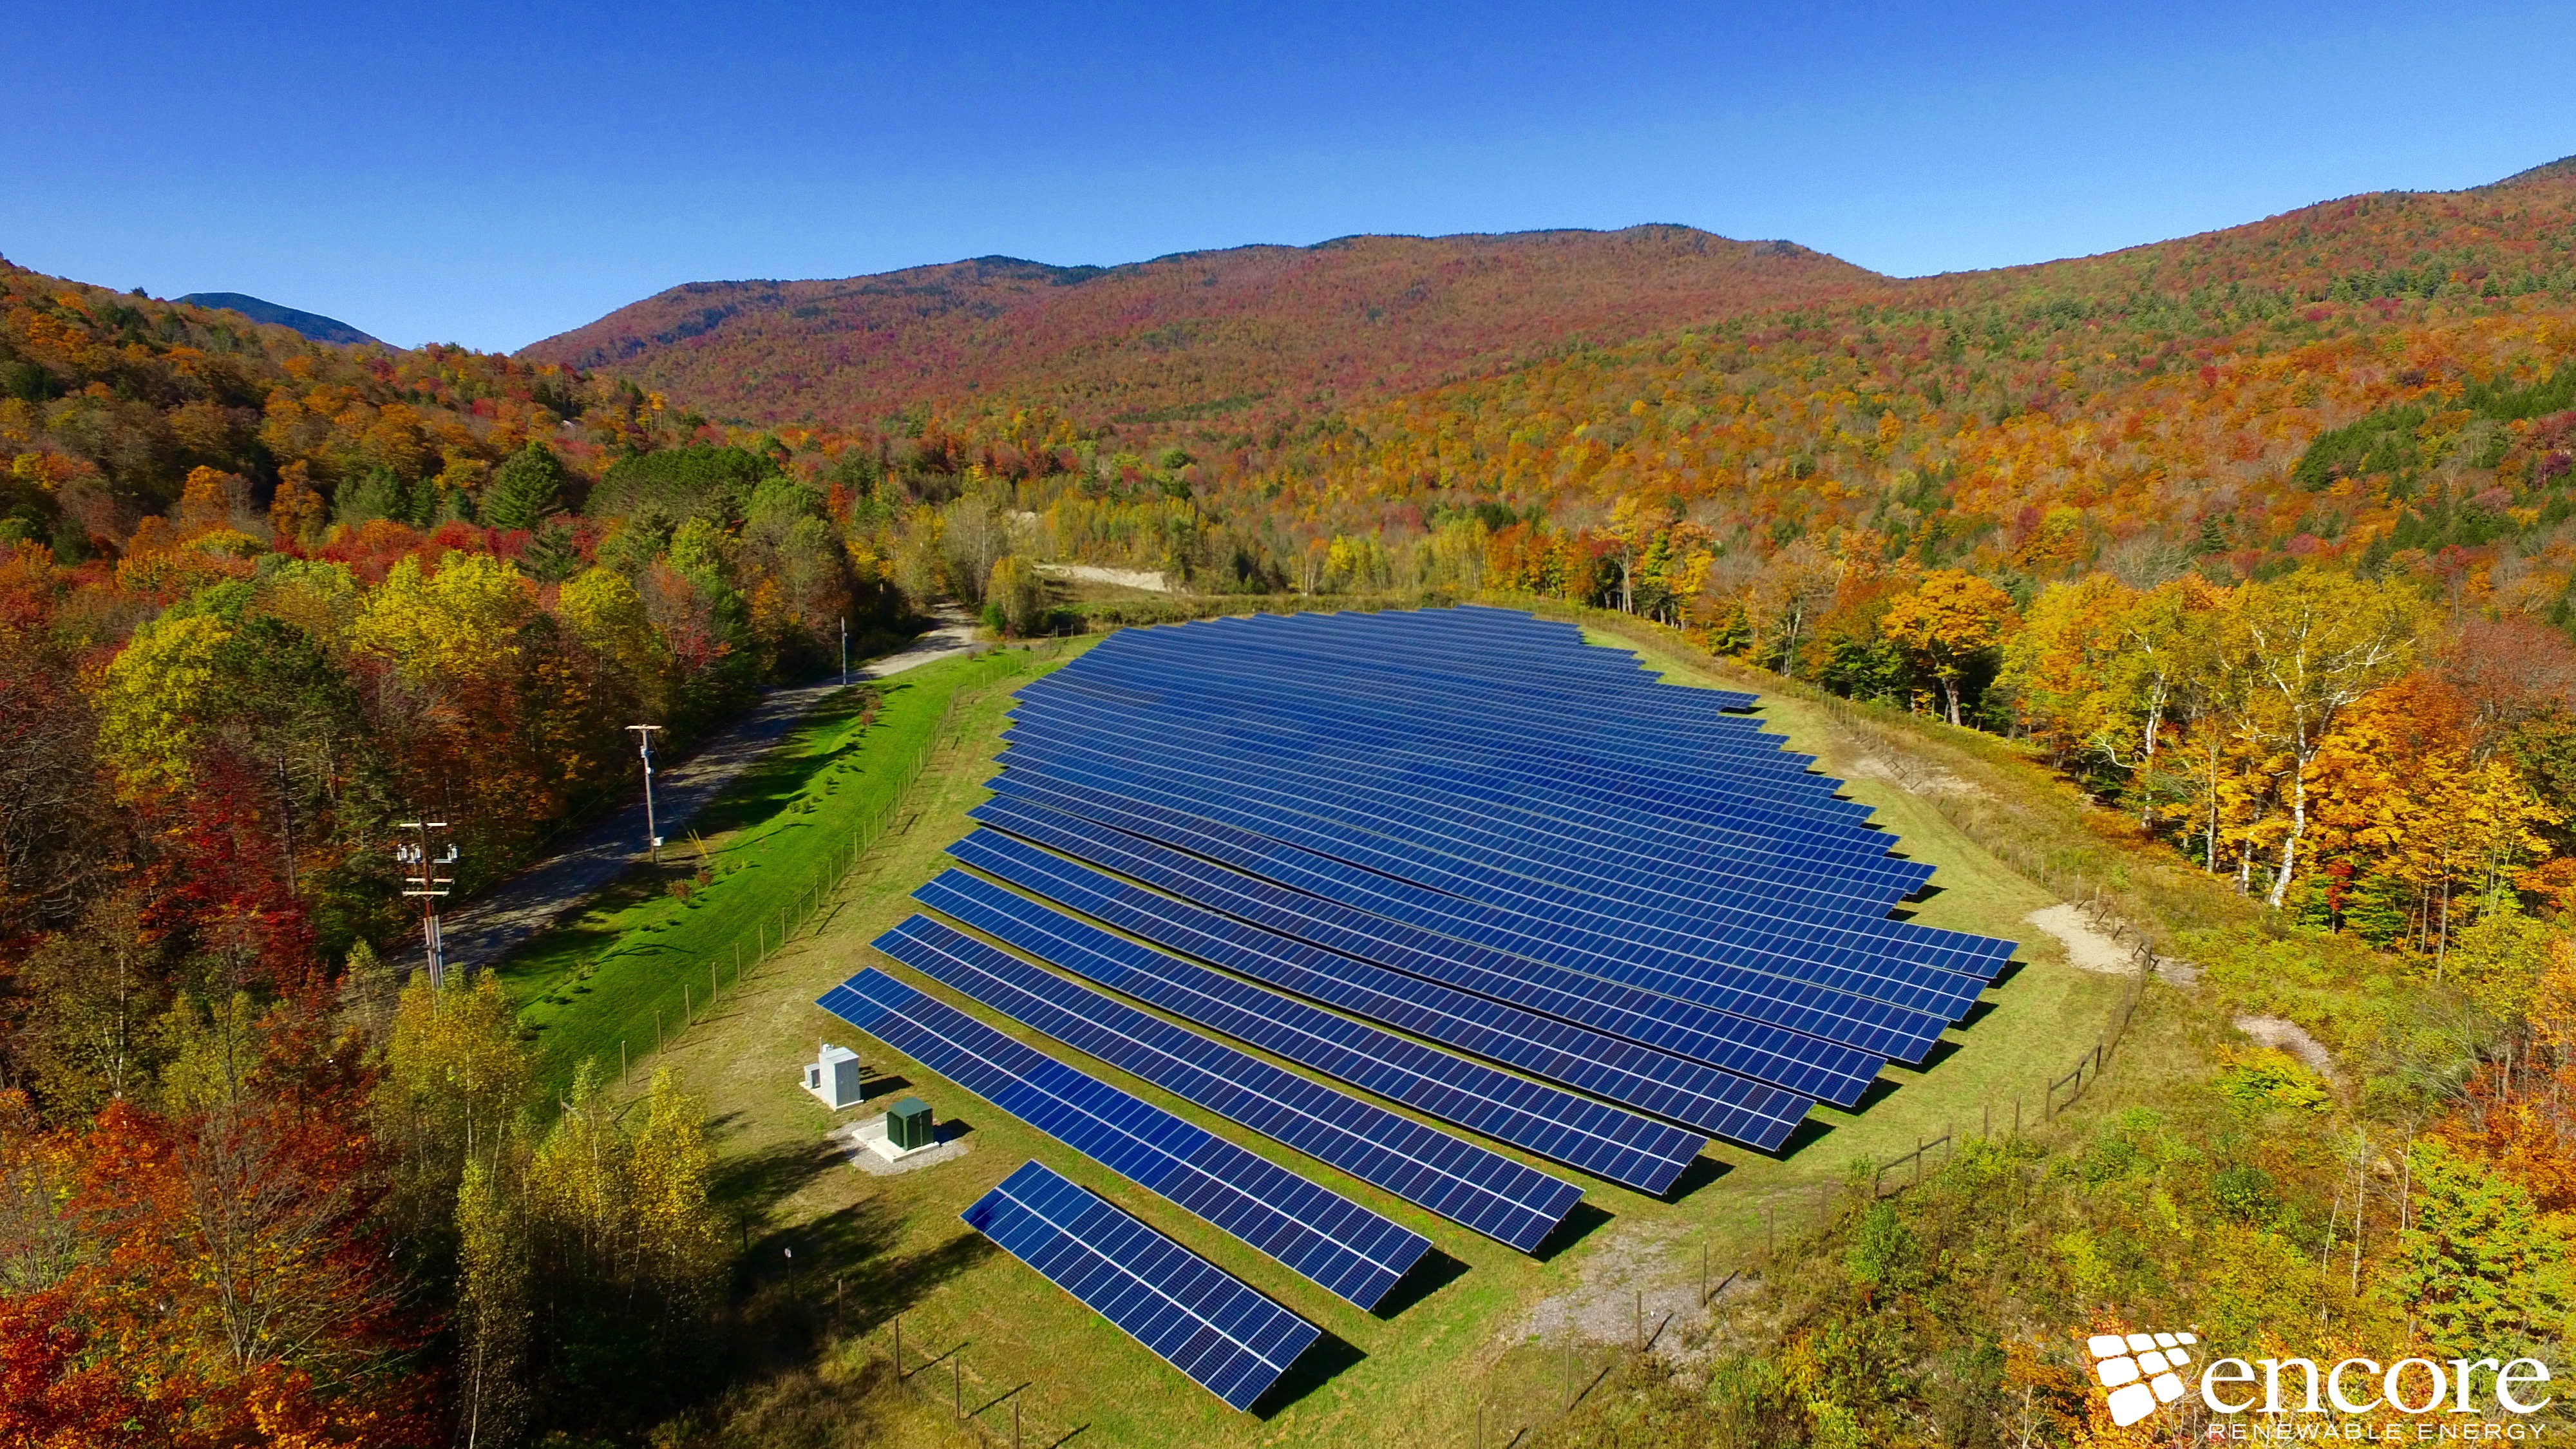 Nebraska Valley Solar Farm in Fall